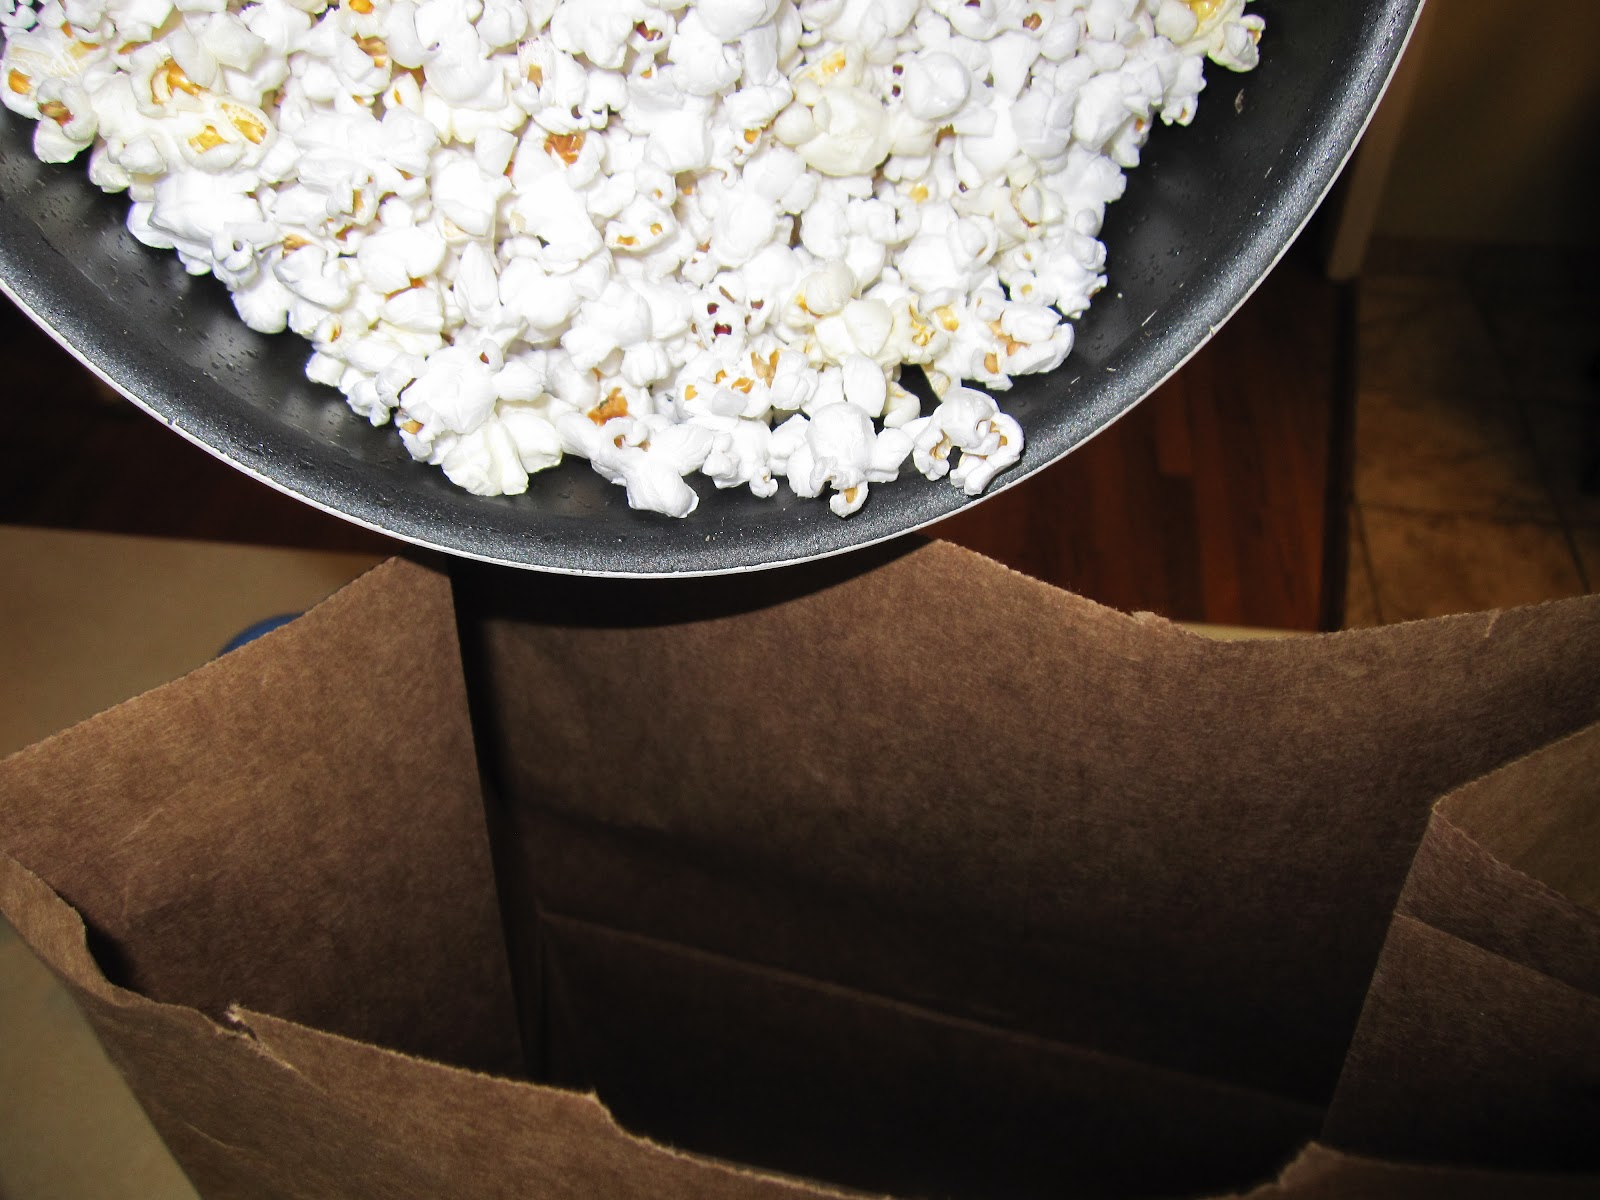 The doherty dish the best popcorn for 1 tablespoon of butter